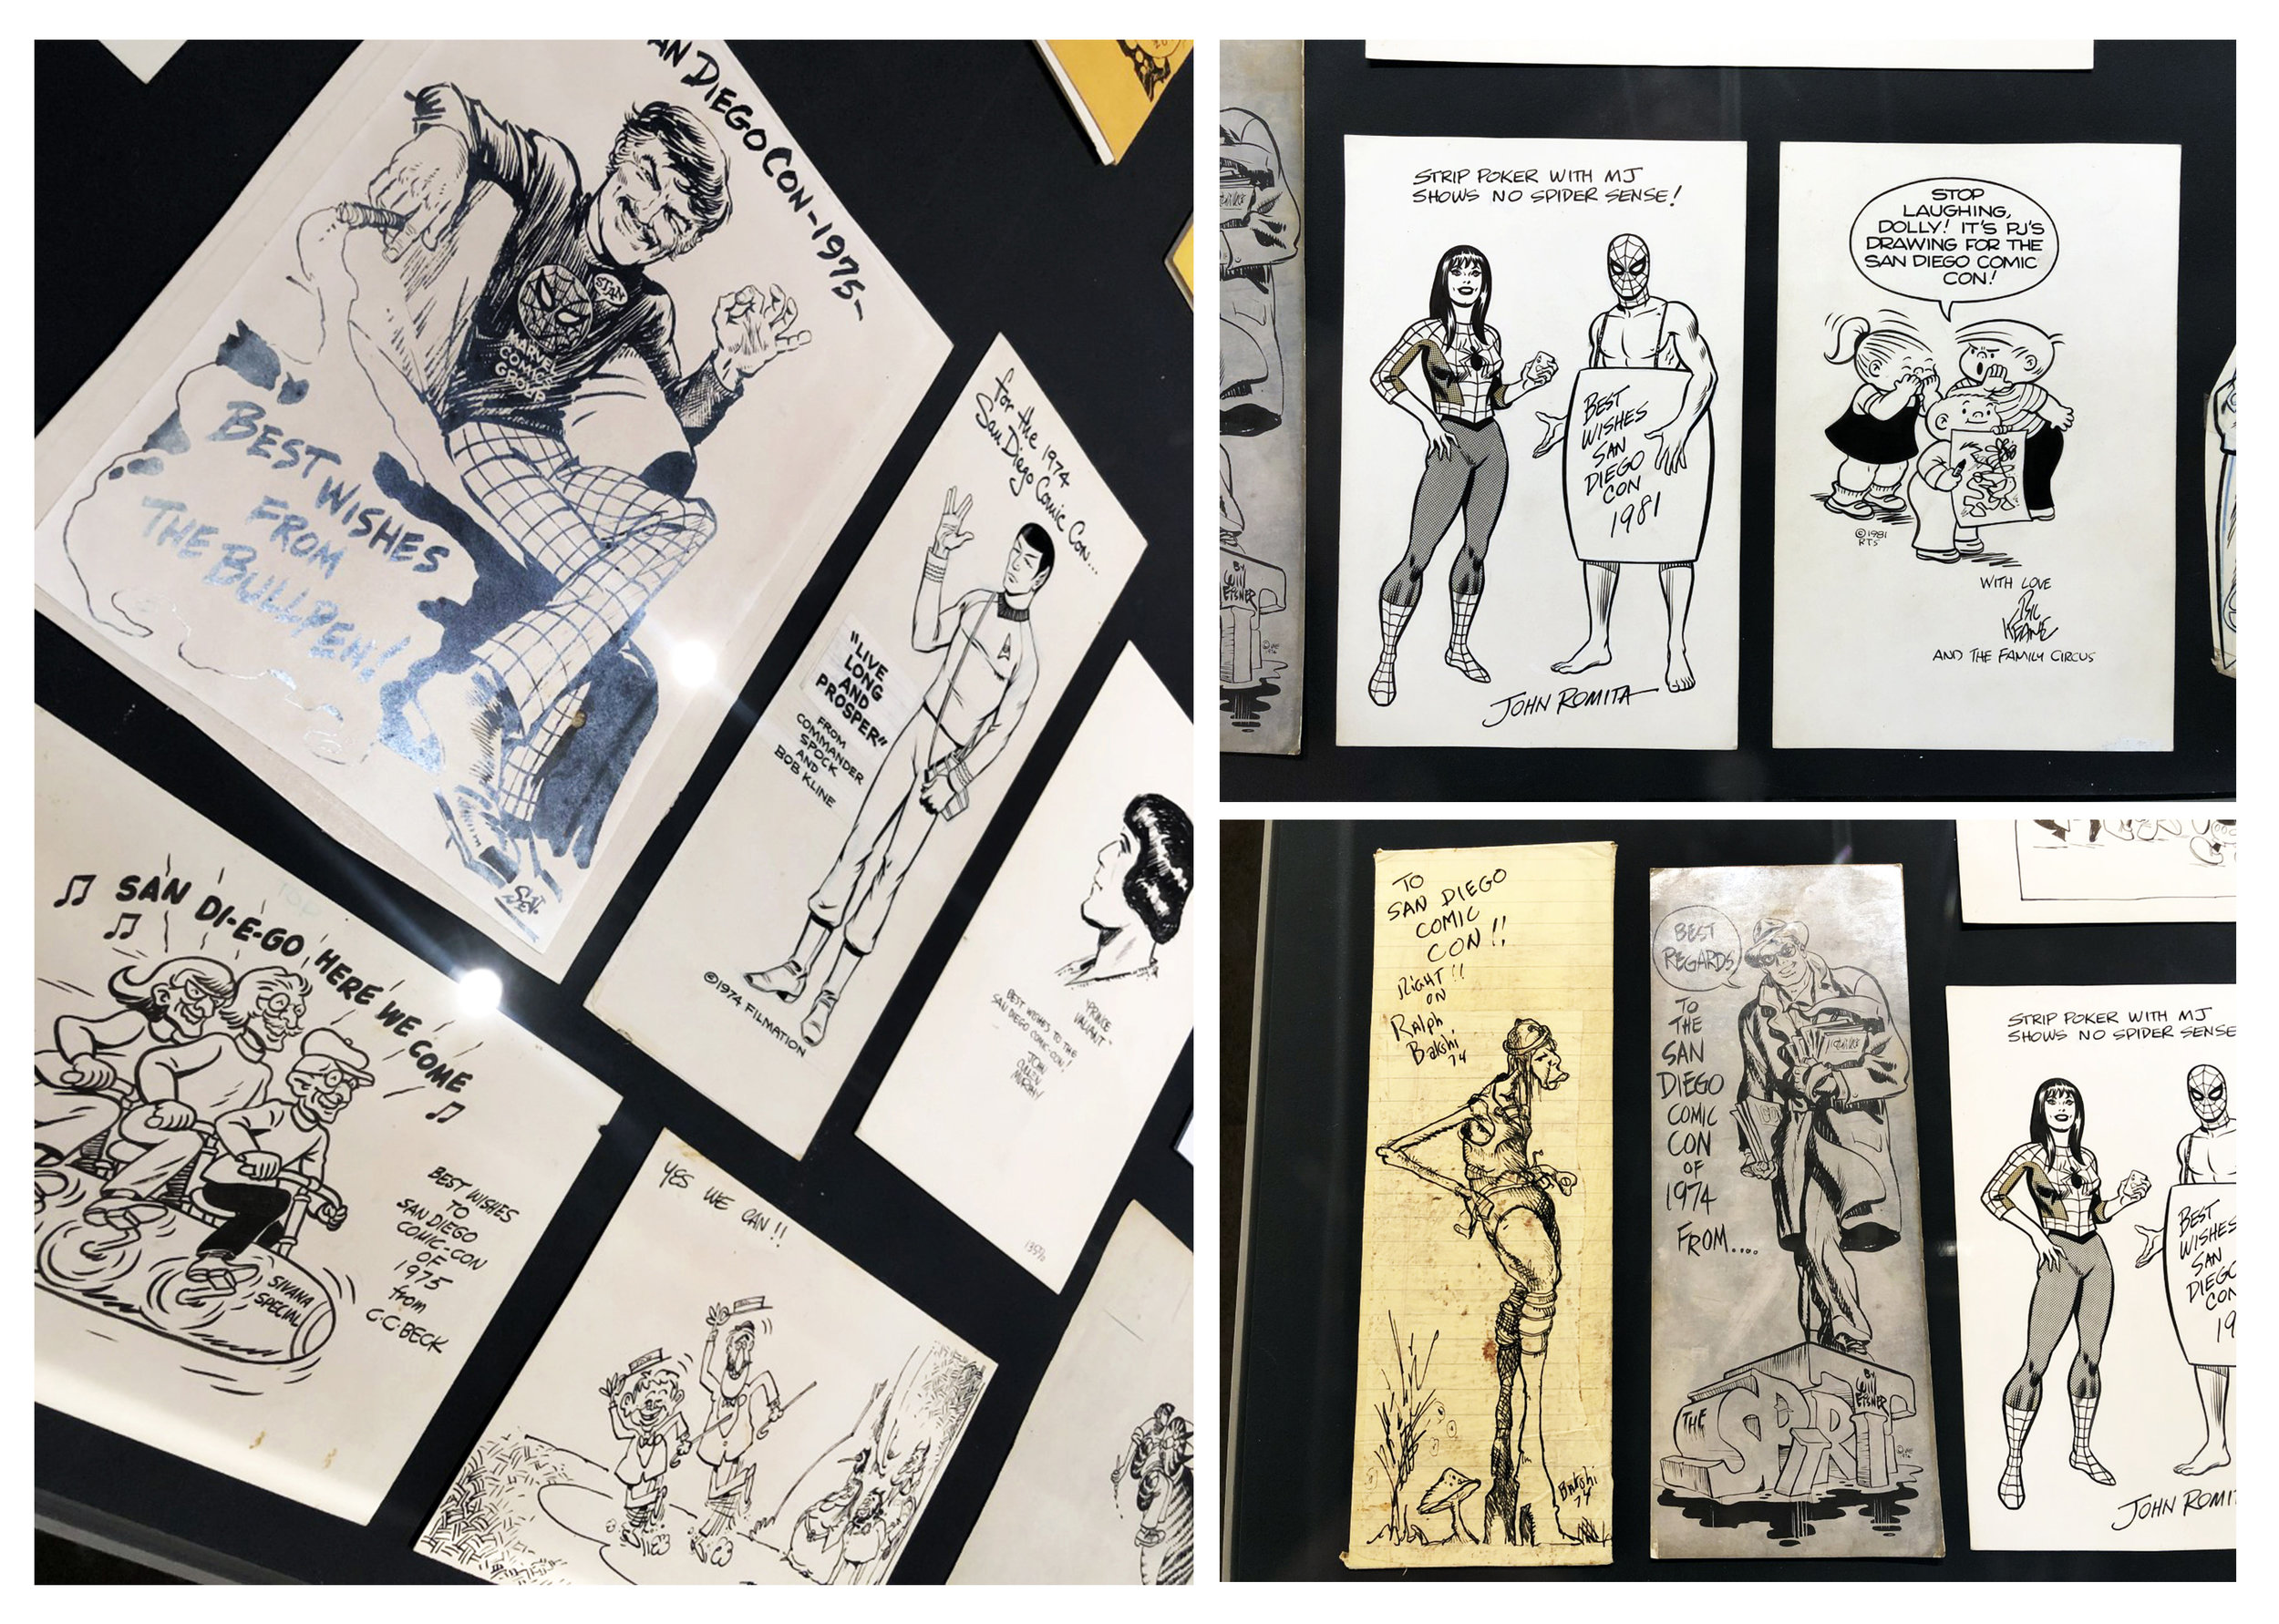 Original interior artwork submitted by Bob Kline, John Murphy, C.C. Beck, Sergio Aragones, John Romita Sr., Bill Keane, Ralph Bakshi and Will Eisner